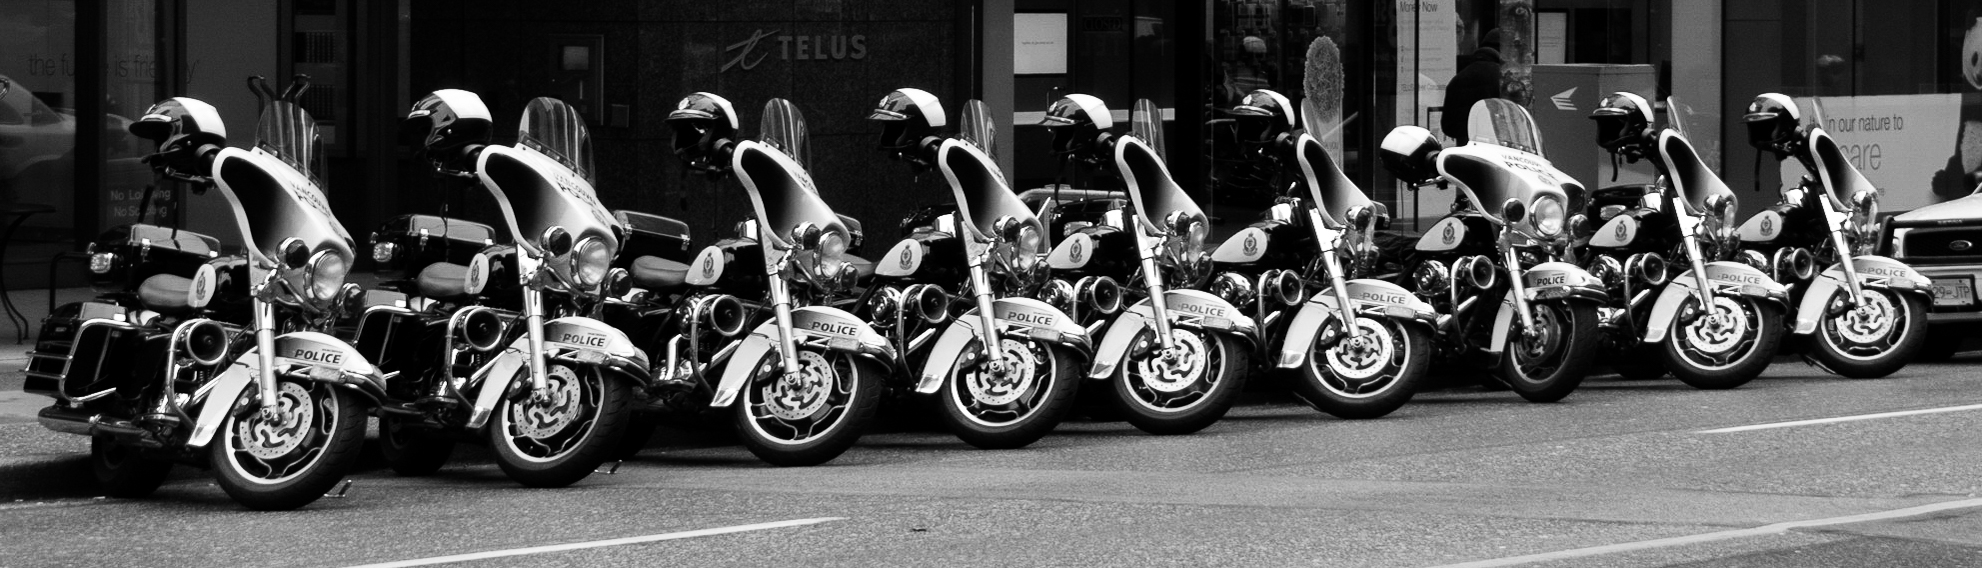 Patterns of Police Motorcycles